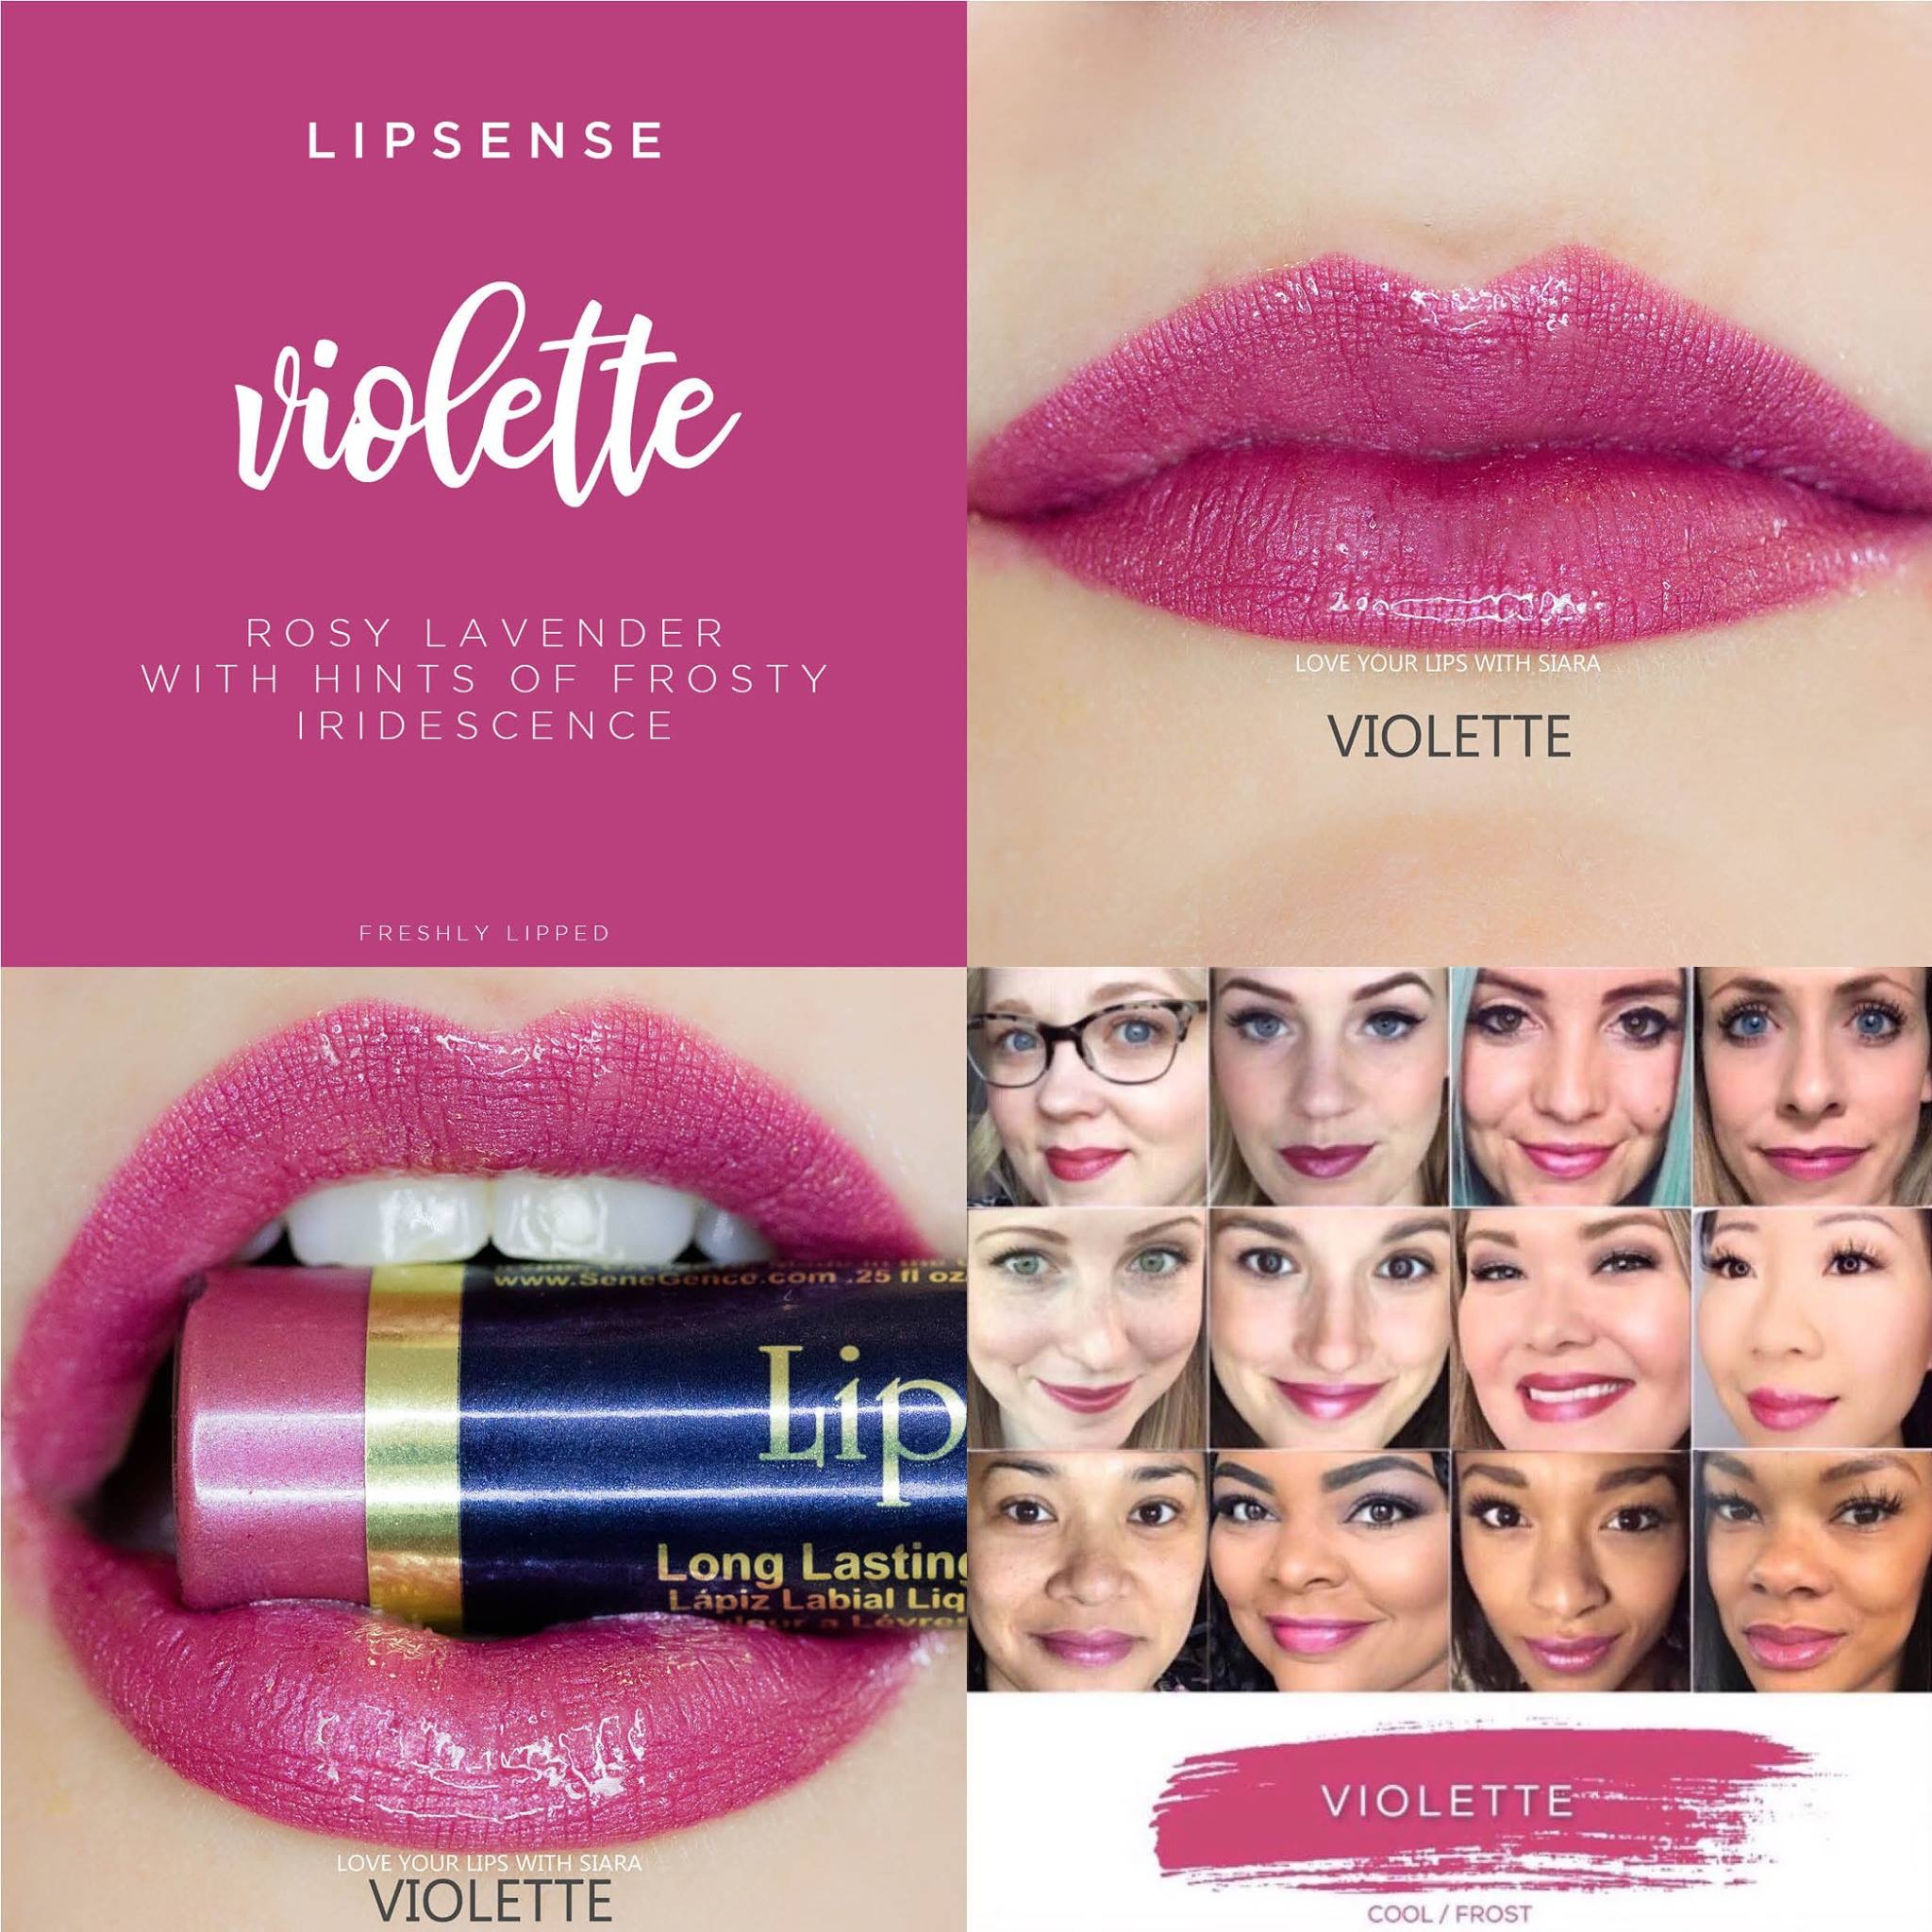 LipSense Violette Collage